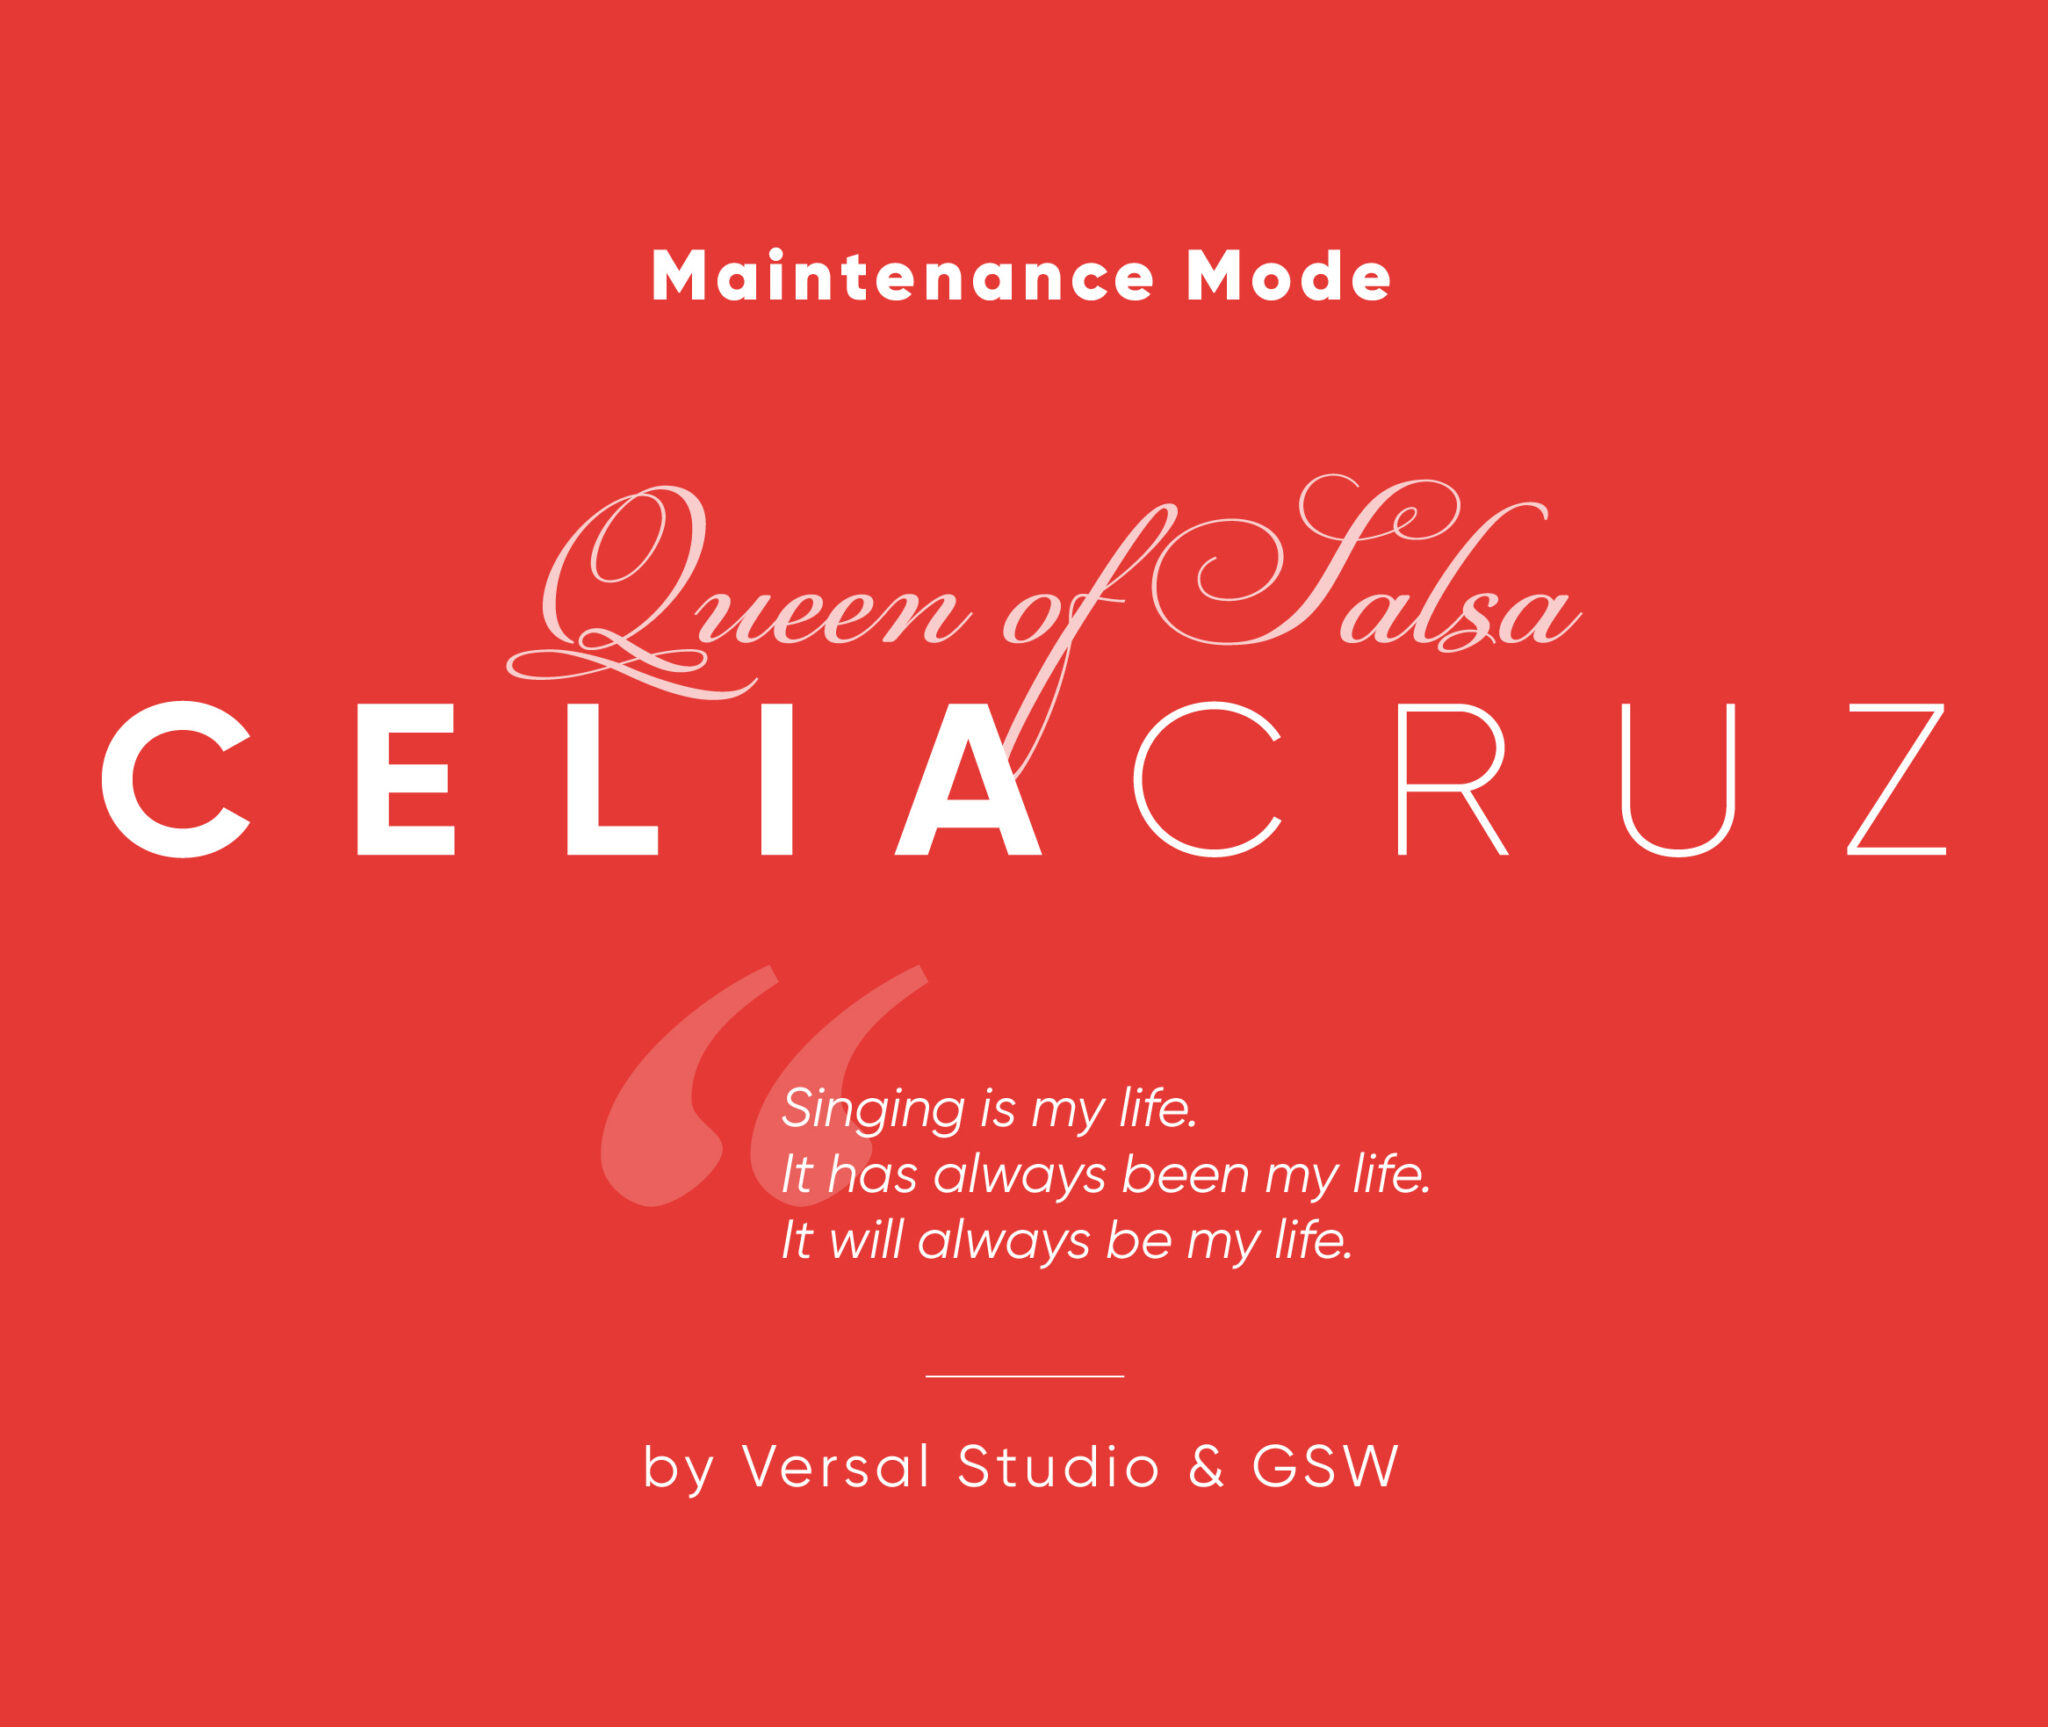 Celia Cruz - Maintenance Mode